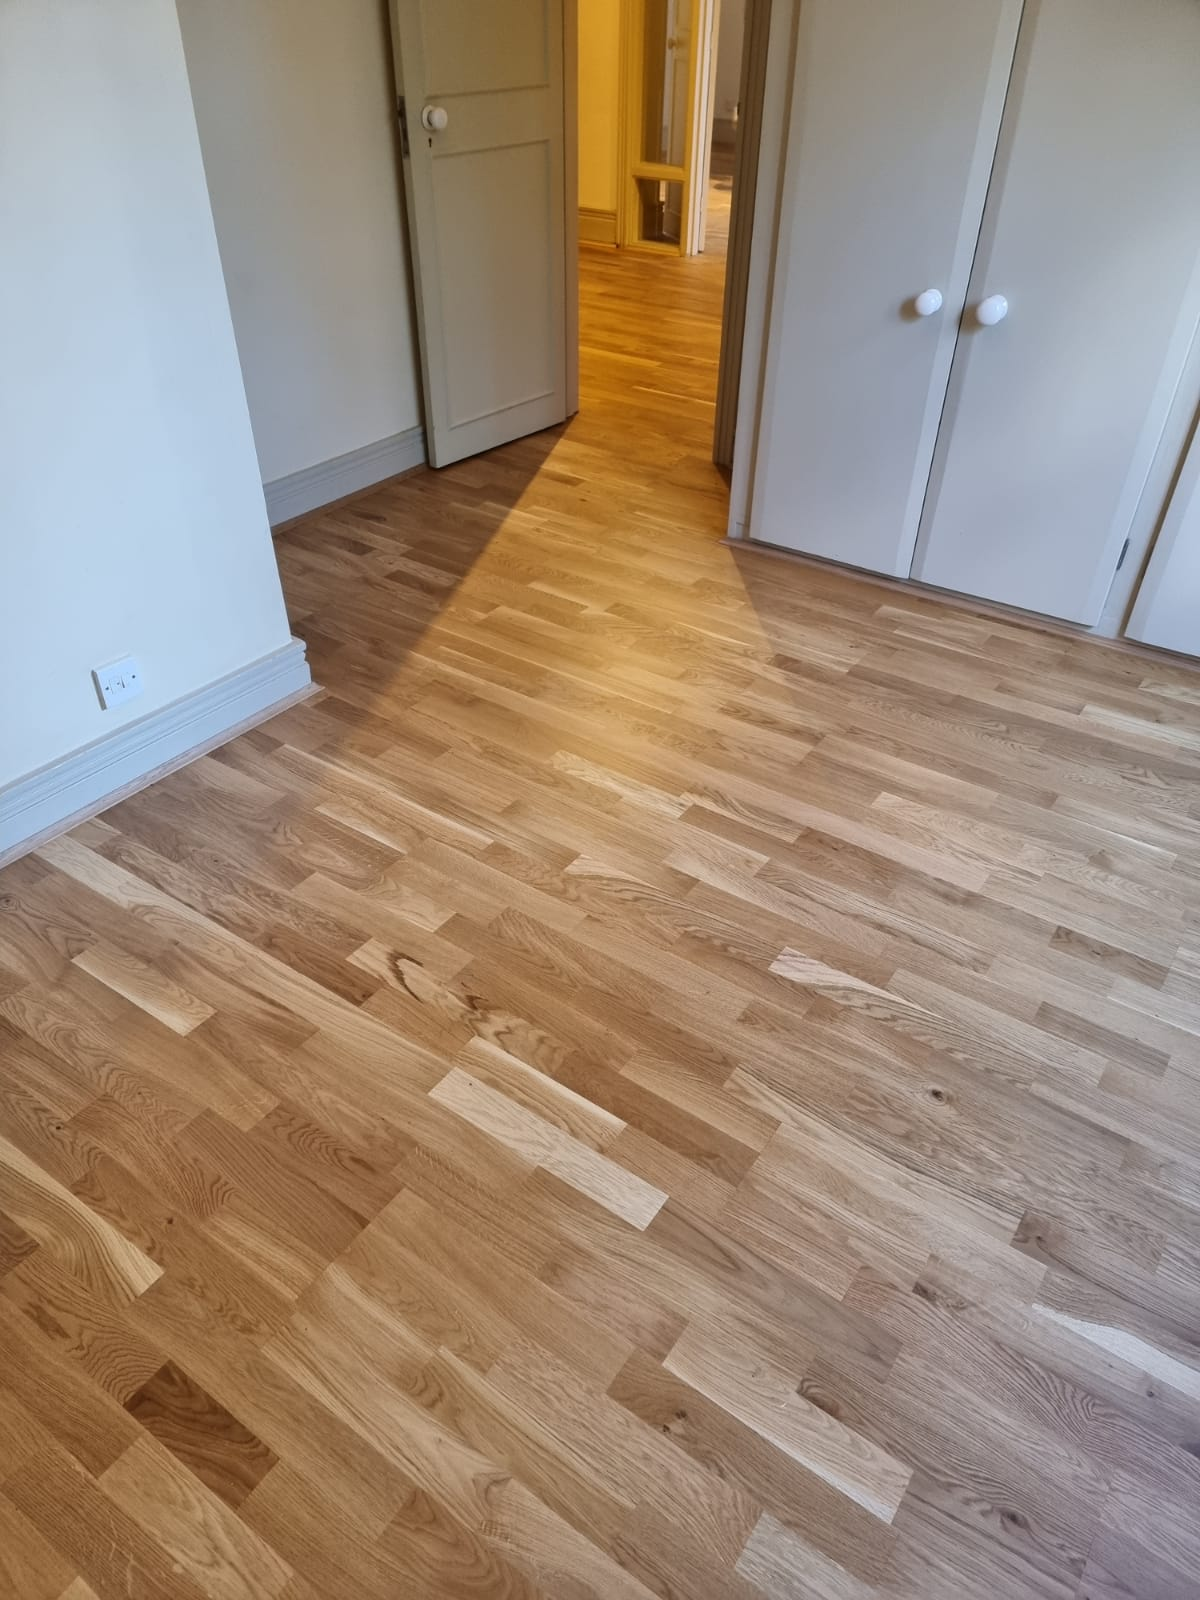 Holt Oak Wood Flooring Yardley in Lambeth 3